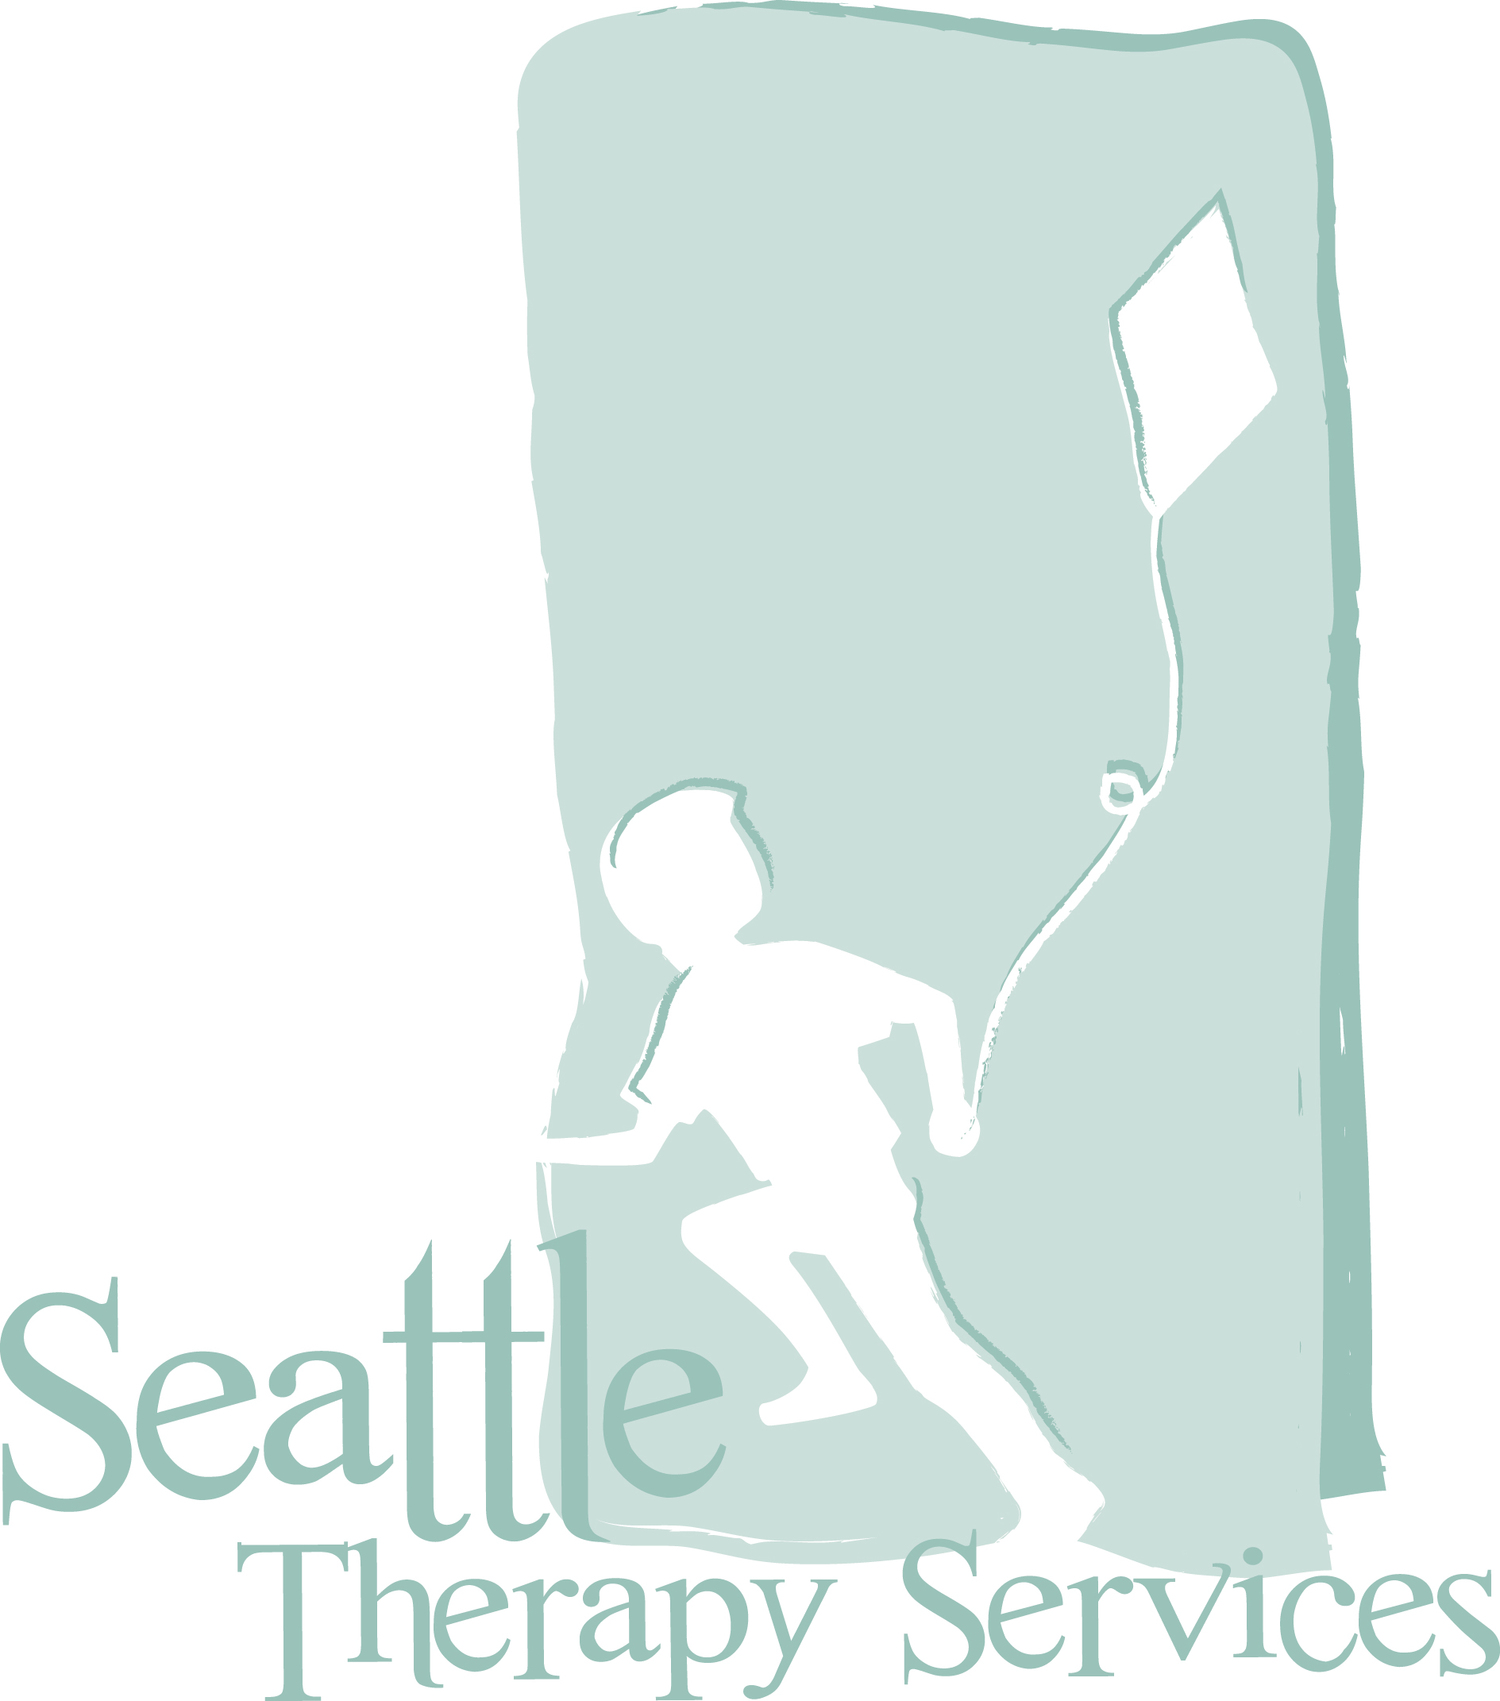 Seattle Therapy Services: Skills for Life